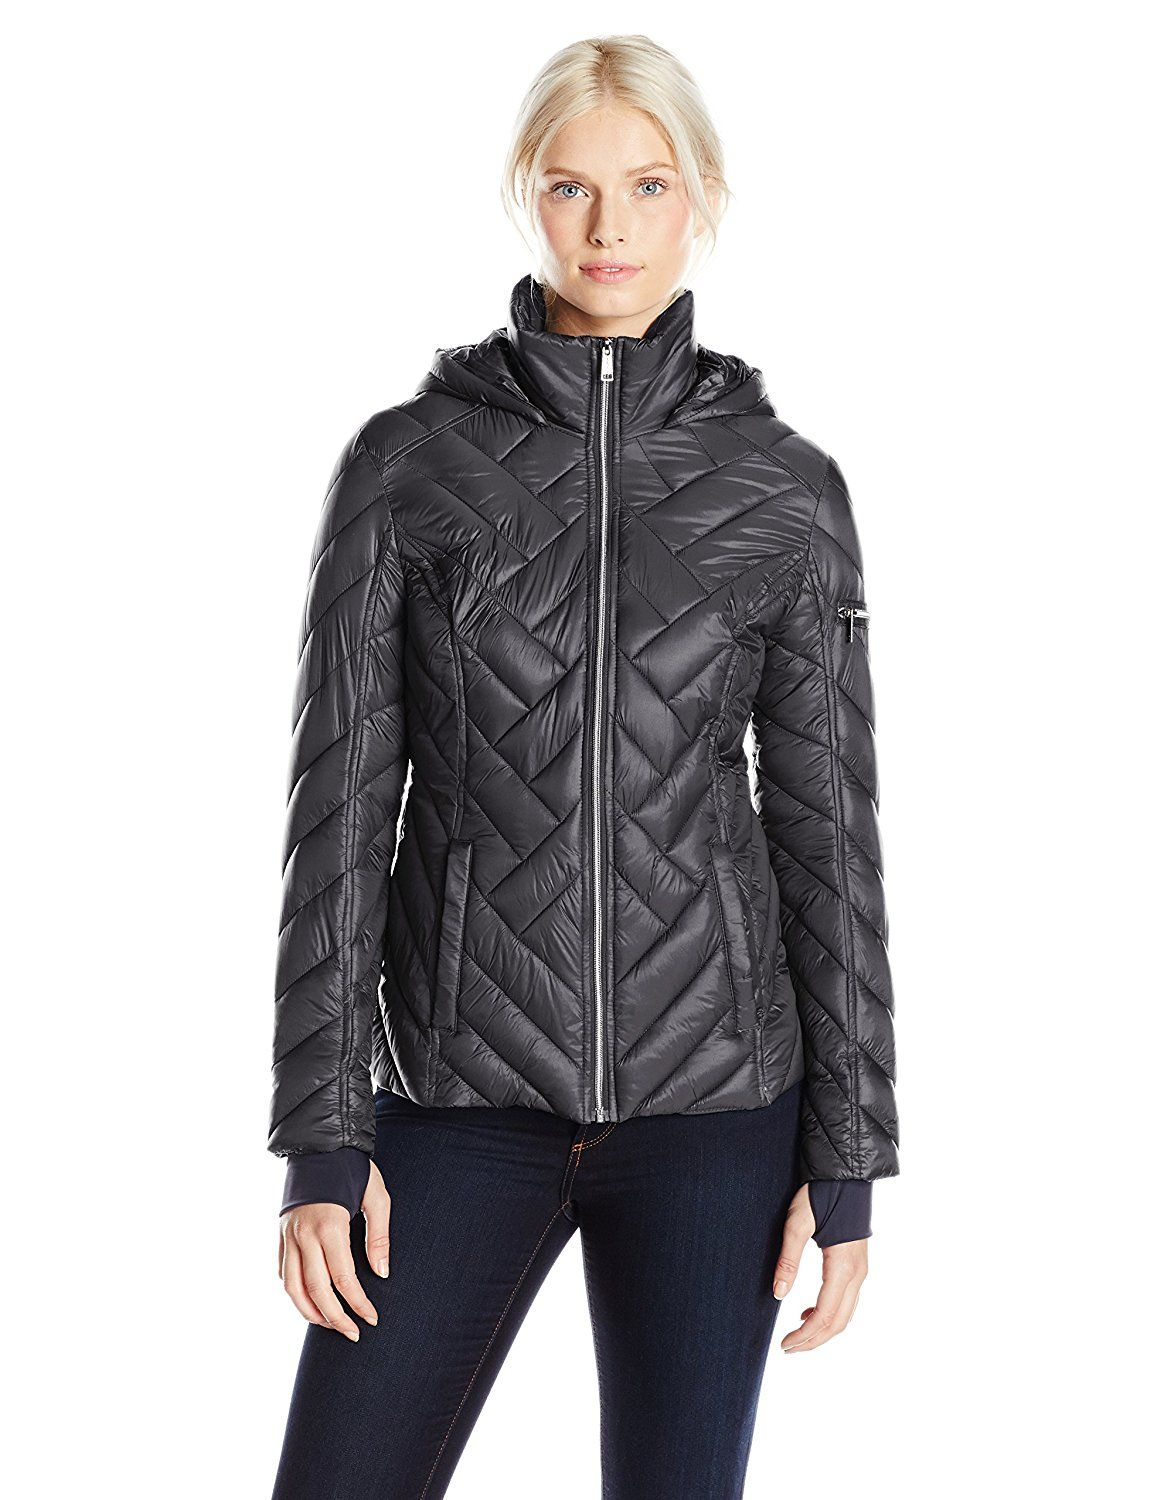 Nautica Women's Hooded Chevron Puffer Jacket at Amazon